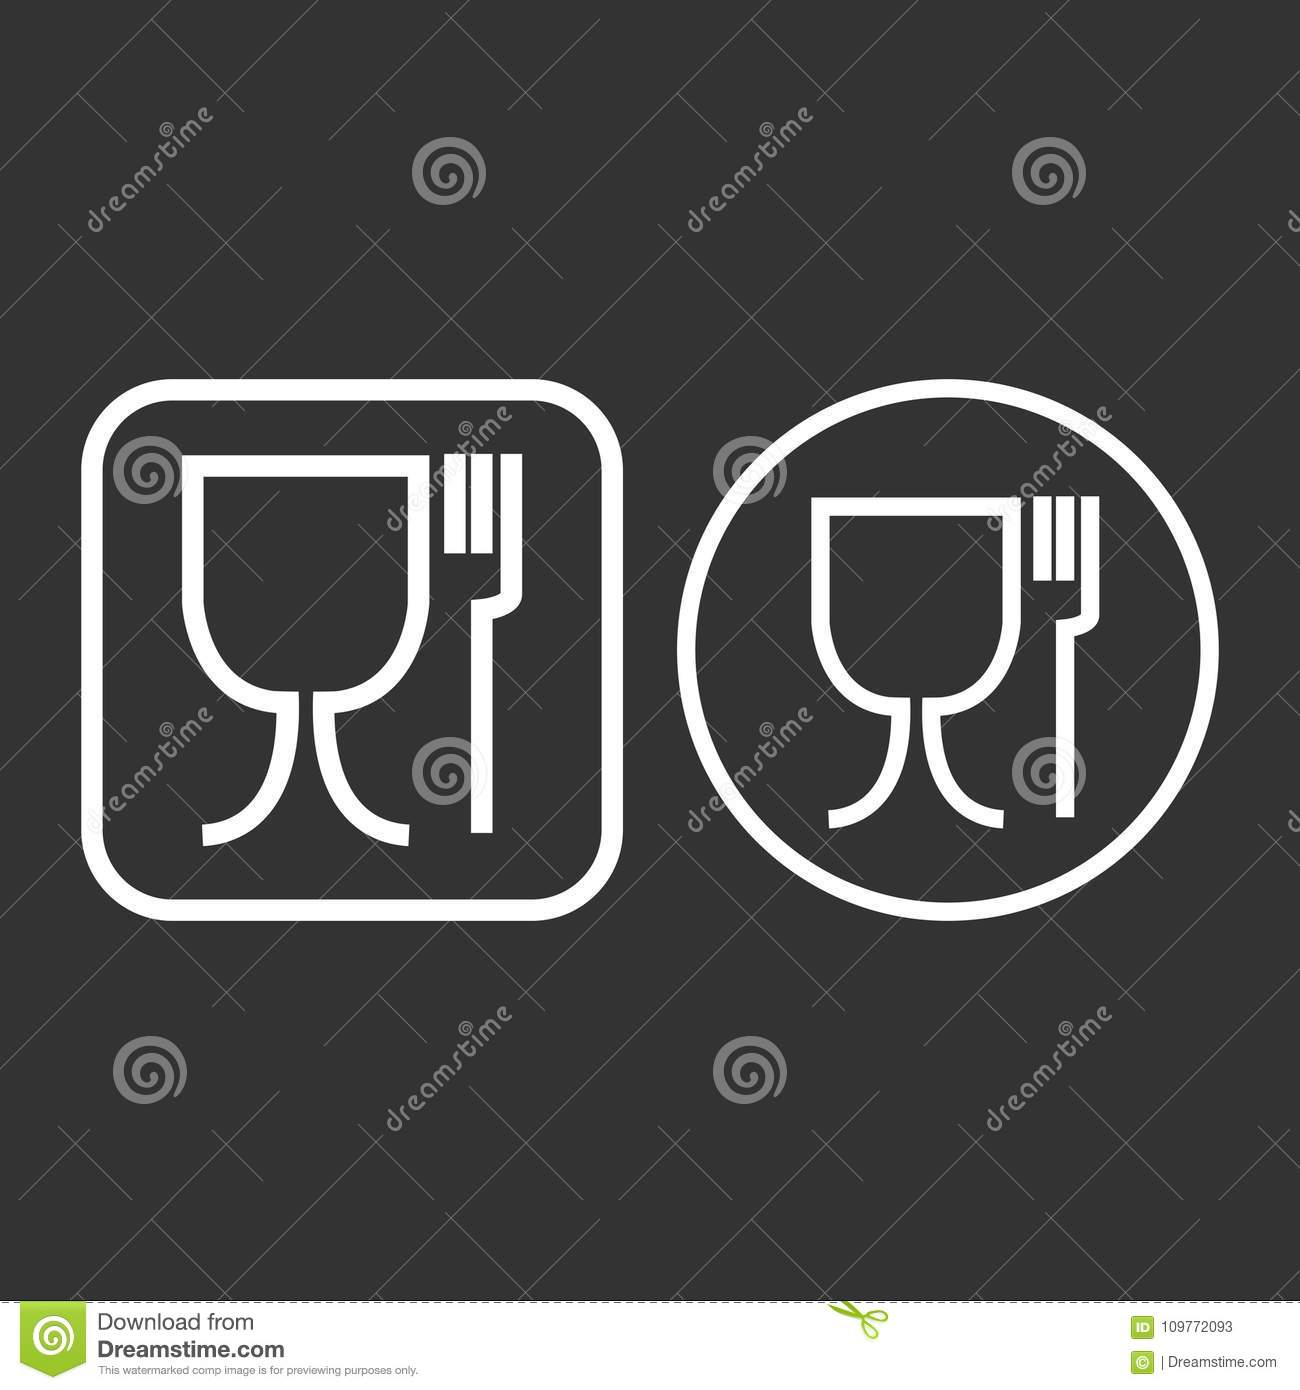 Food safe symbol the international symbol for food safe material is food safe symbol the international symbol for food safe material is a wine glass and a fork symbol sign vector illustration biocorpaavc Gallery